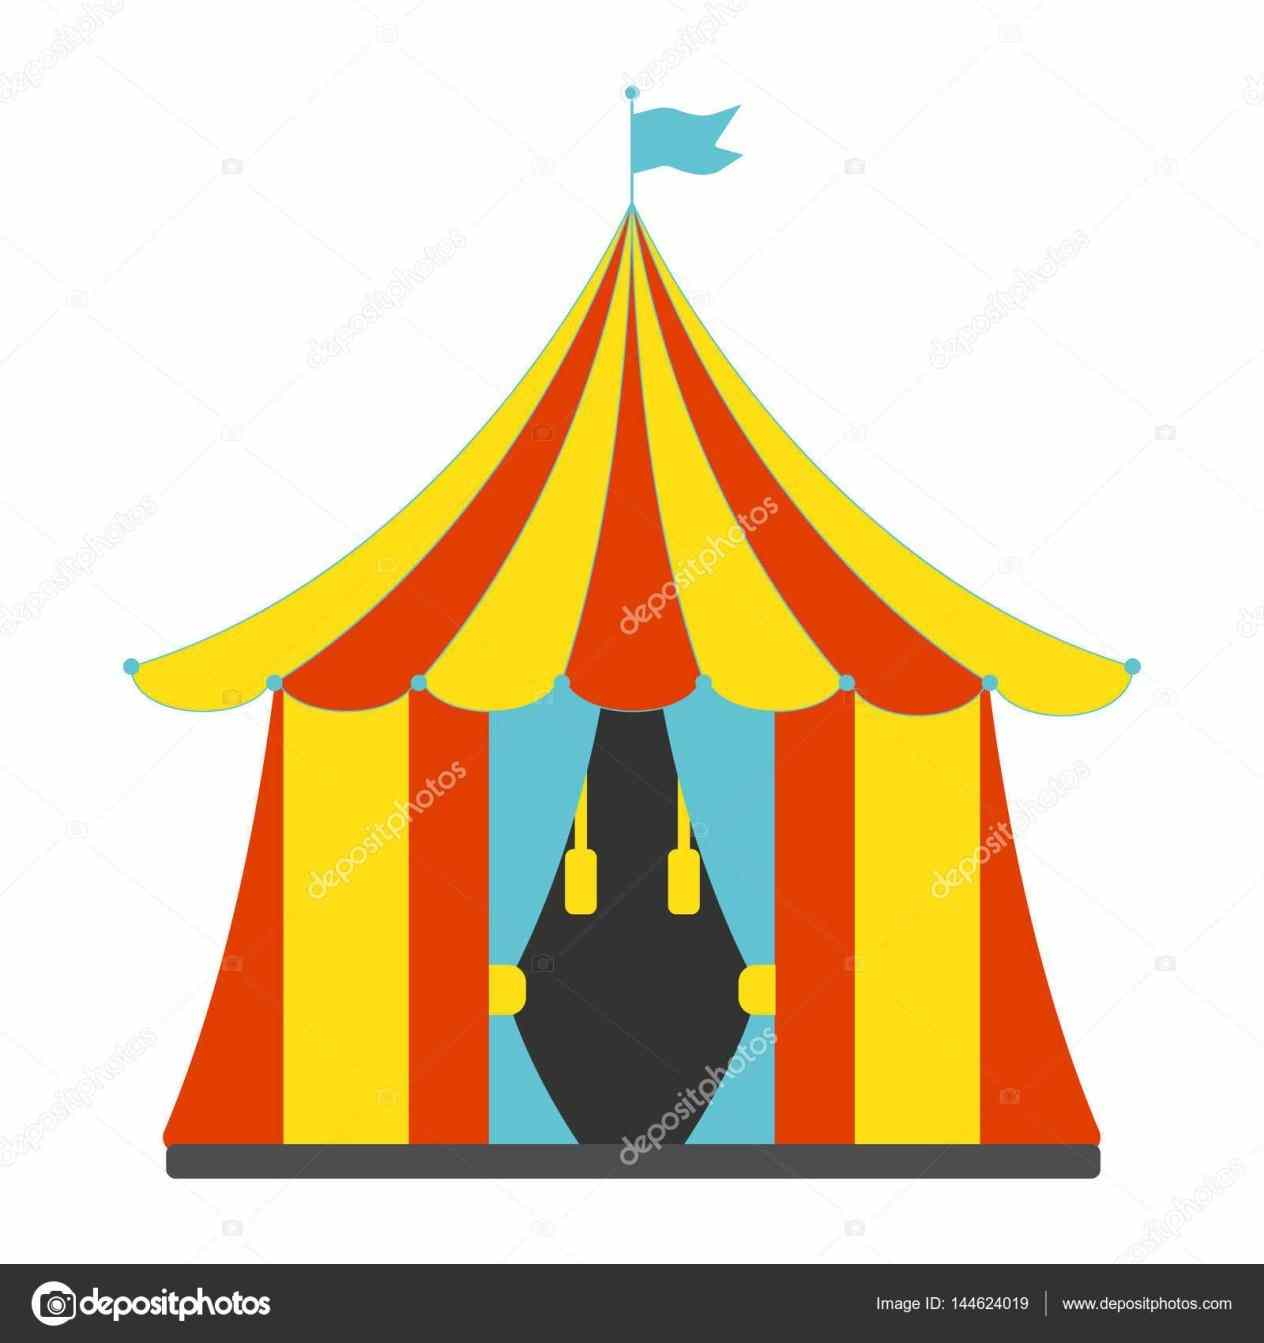 Circus Tent Clipart at GetDrawings.com | Free for personal use ...